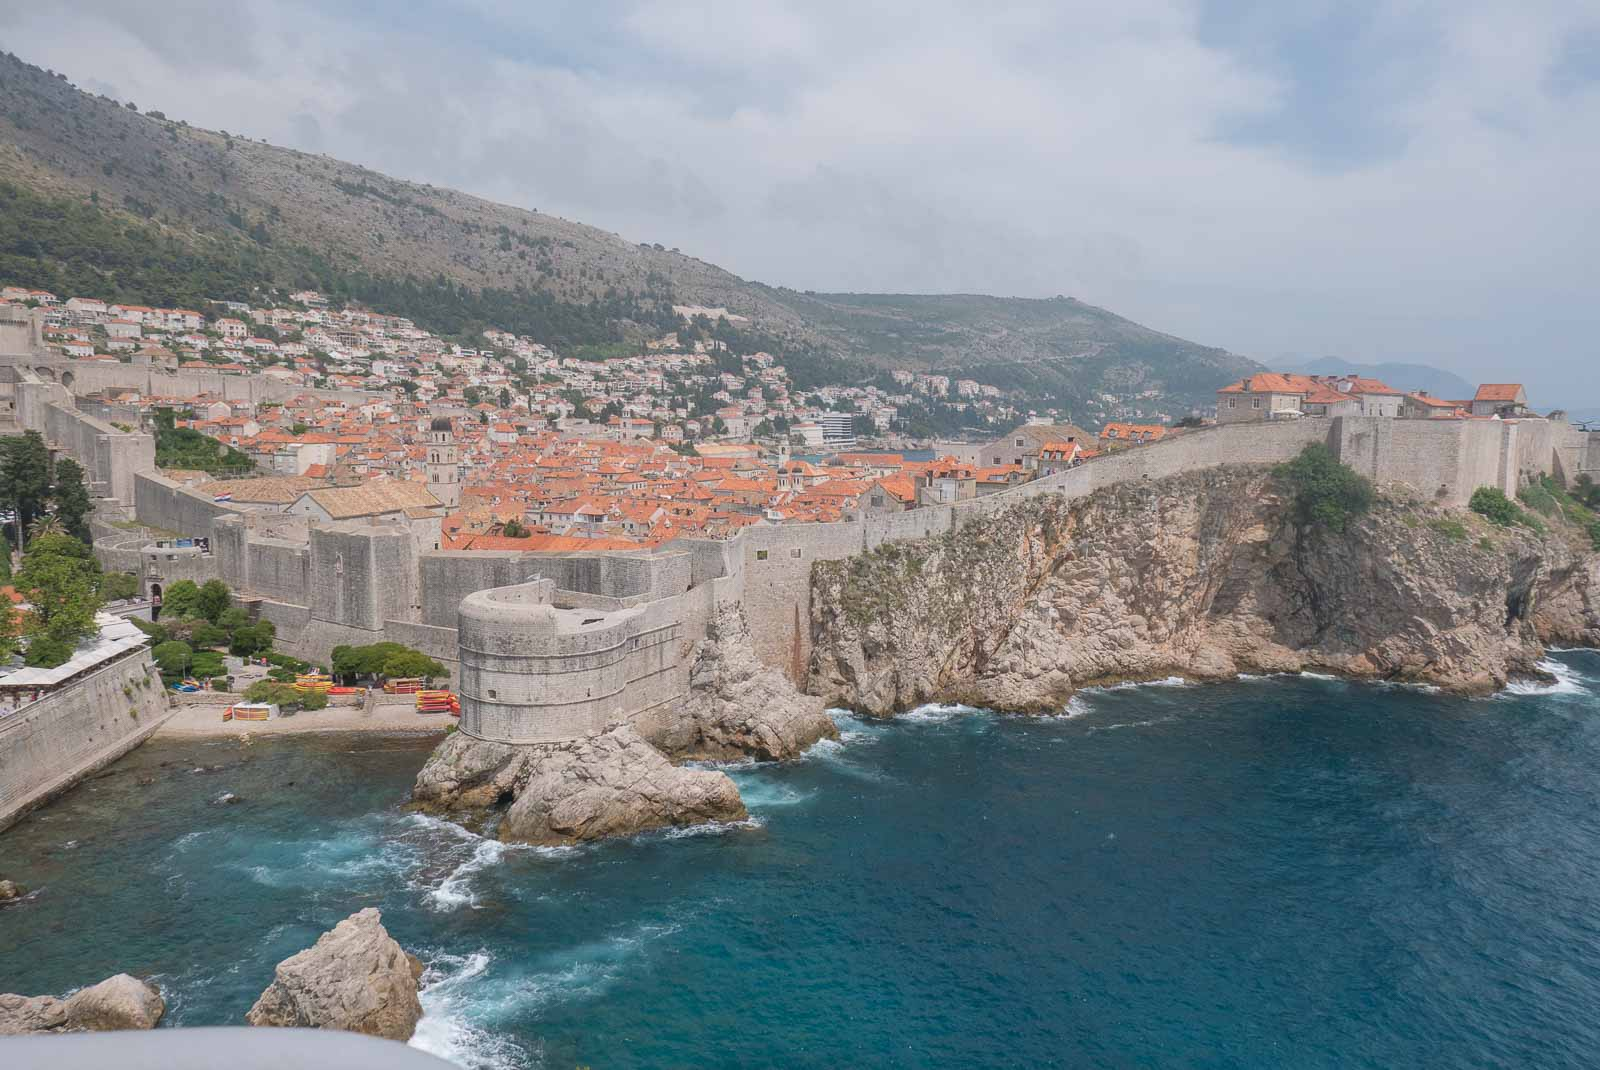 Views over Dubrovnik and the Adriatic Sea.